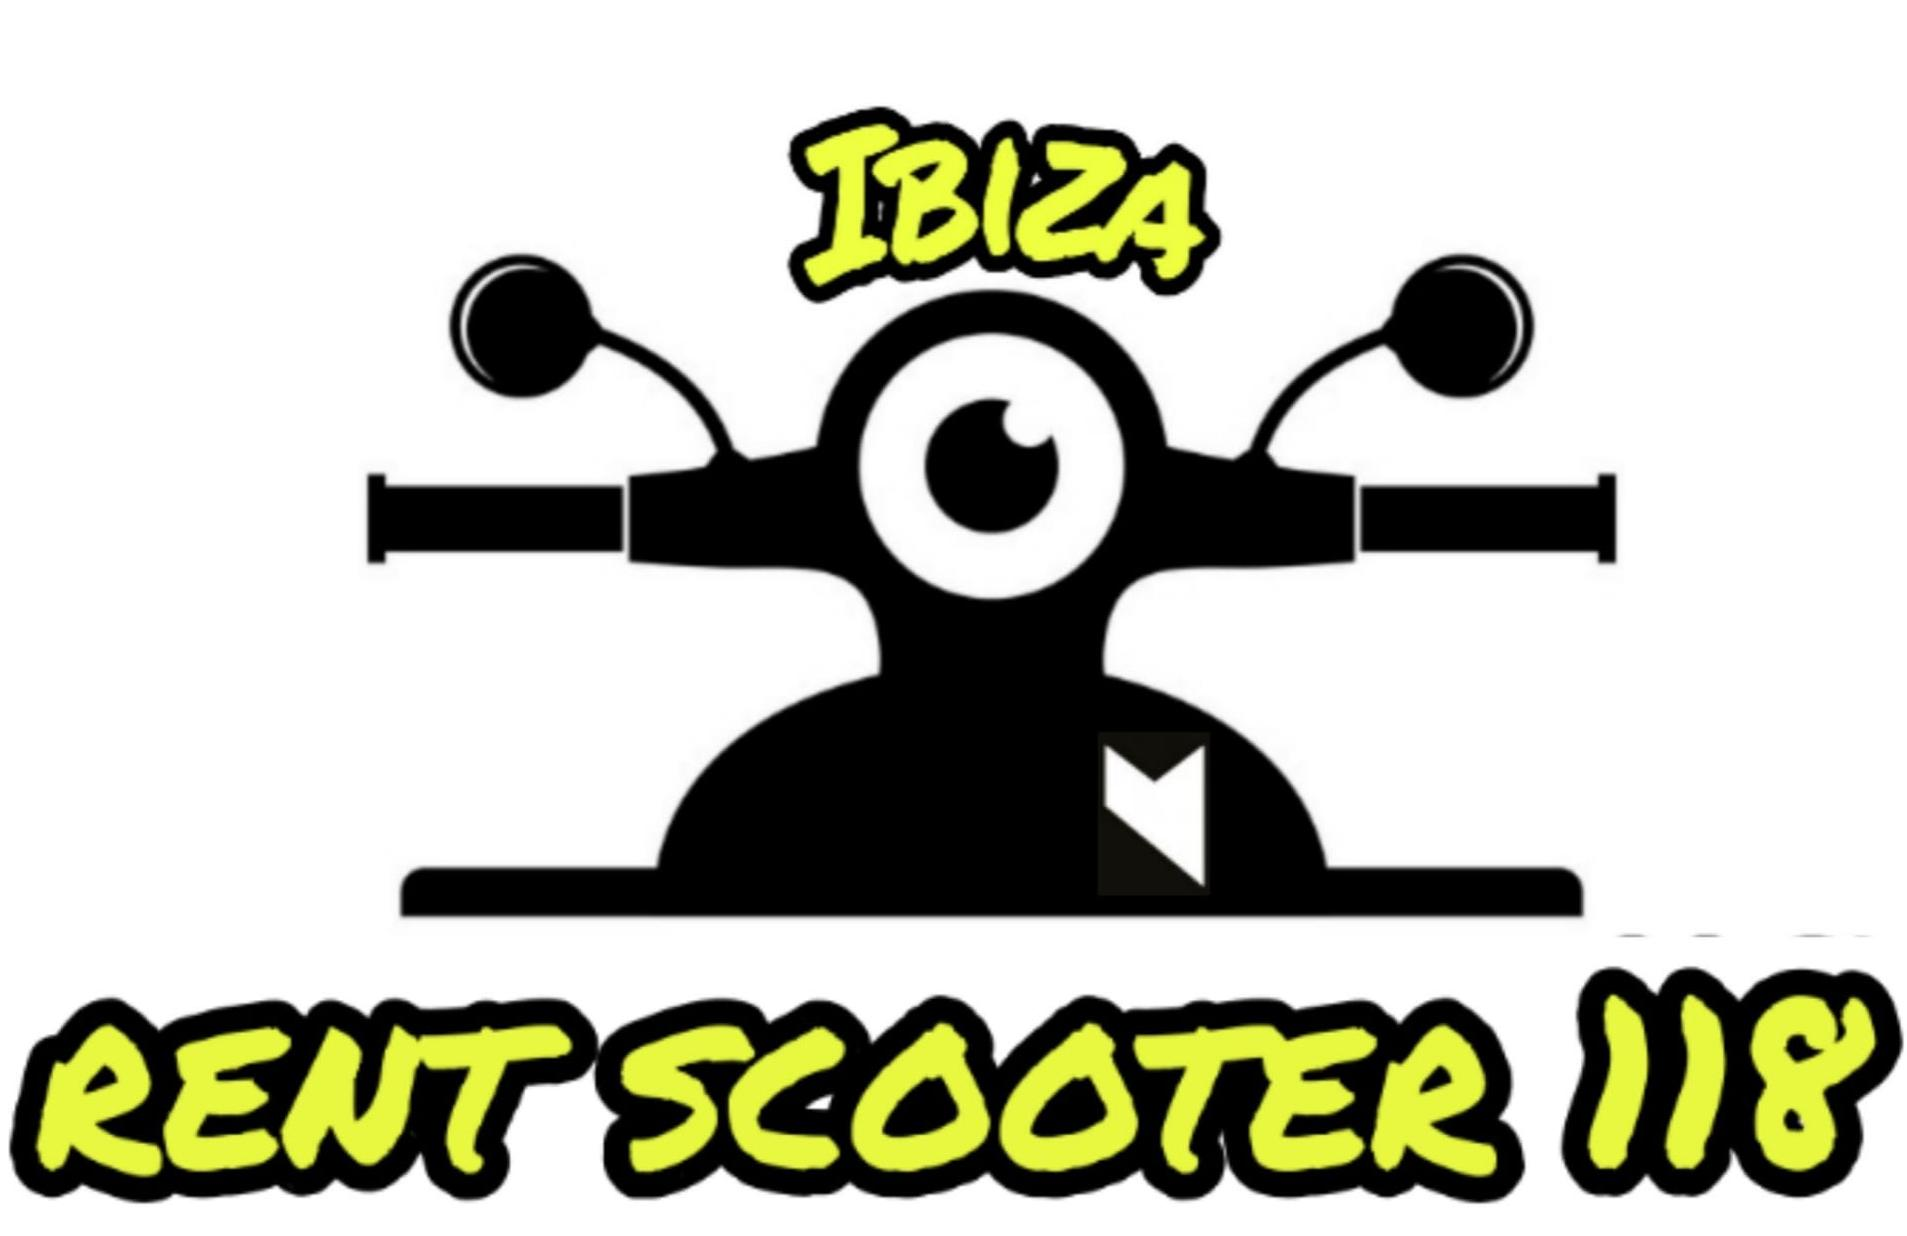 Ibiza Rent Scooter 118